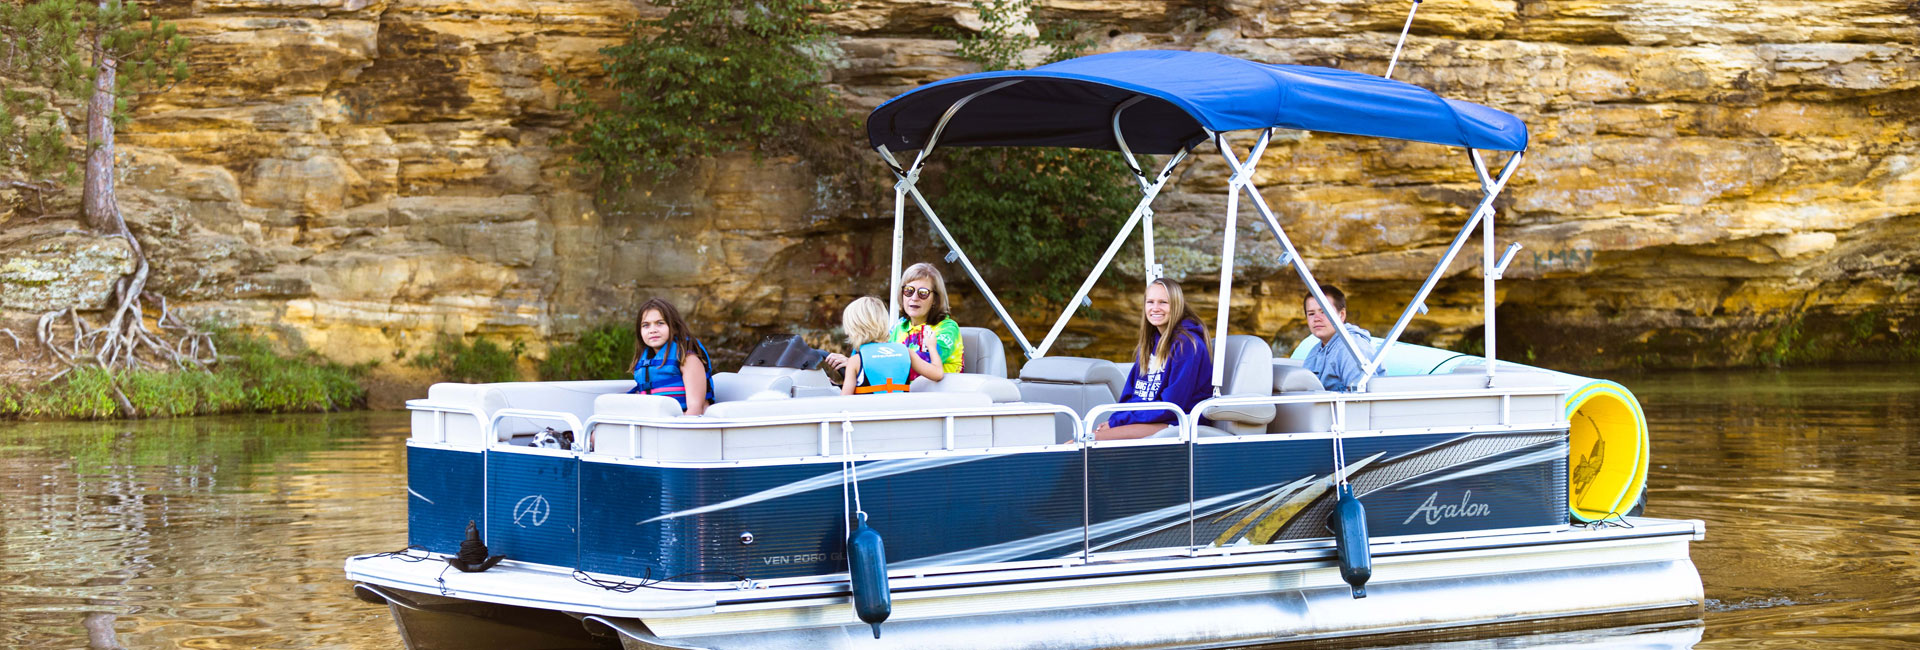 Avalon Pontoon Boat Rentals on Mirror Lake